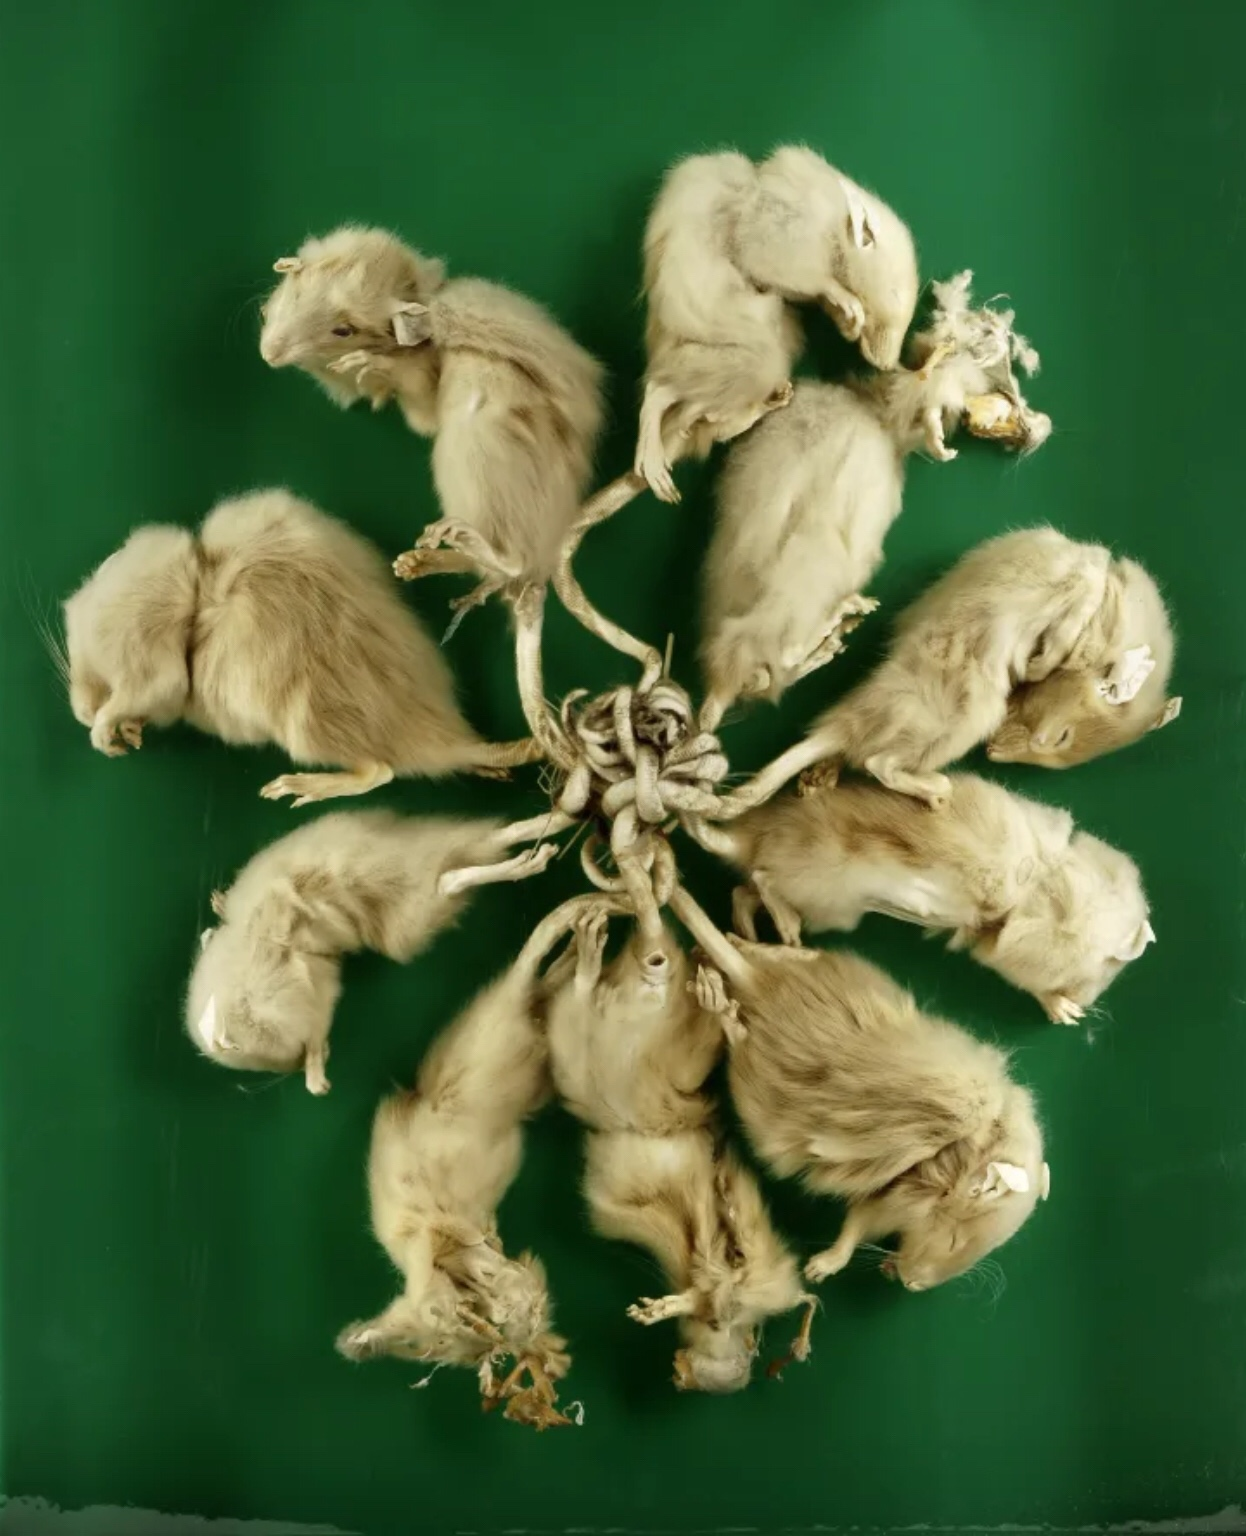 The insane, inconclusive truth behind Rat Kings, the grotesque tangled Super-Rodents